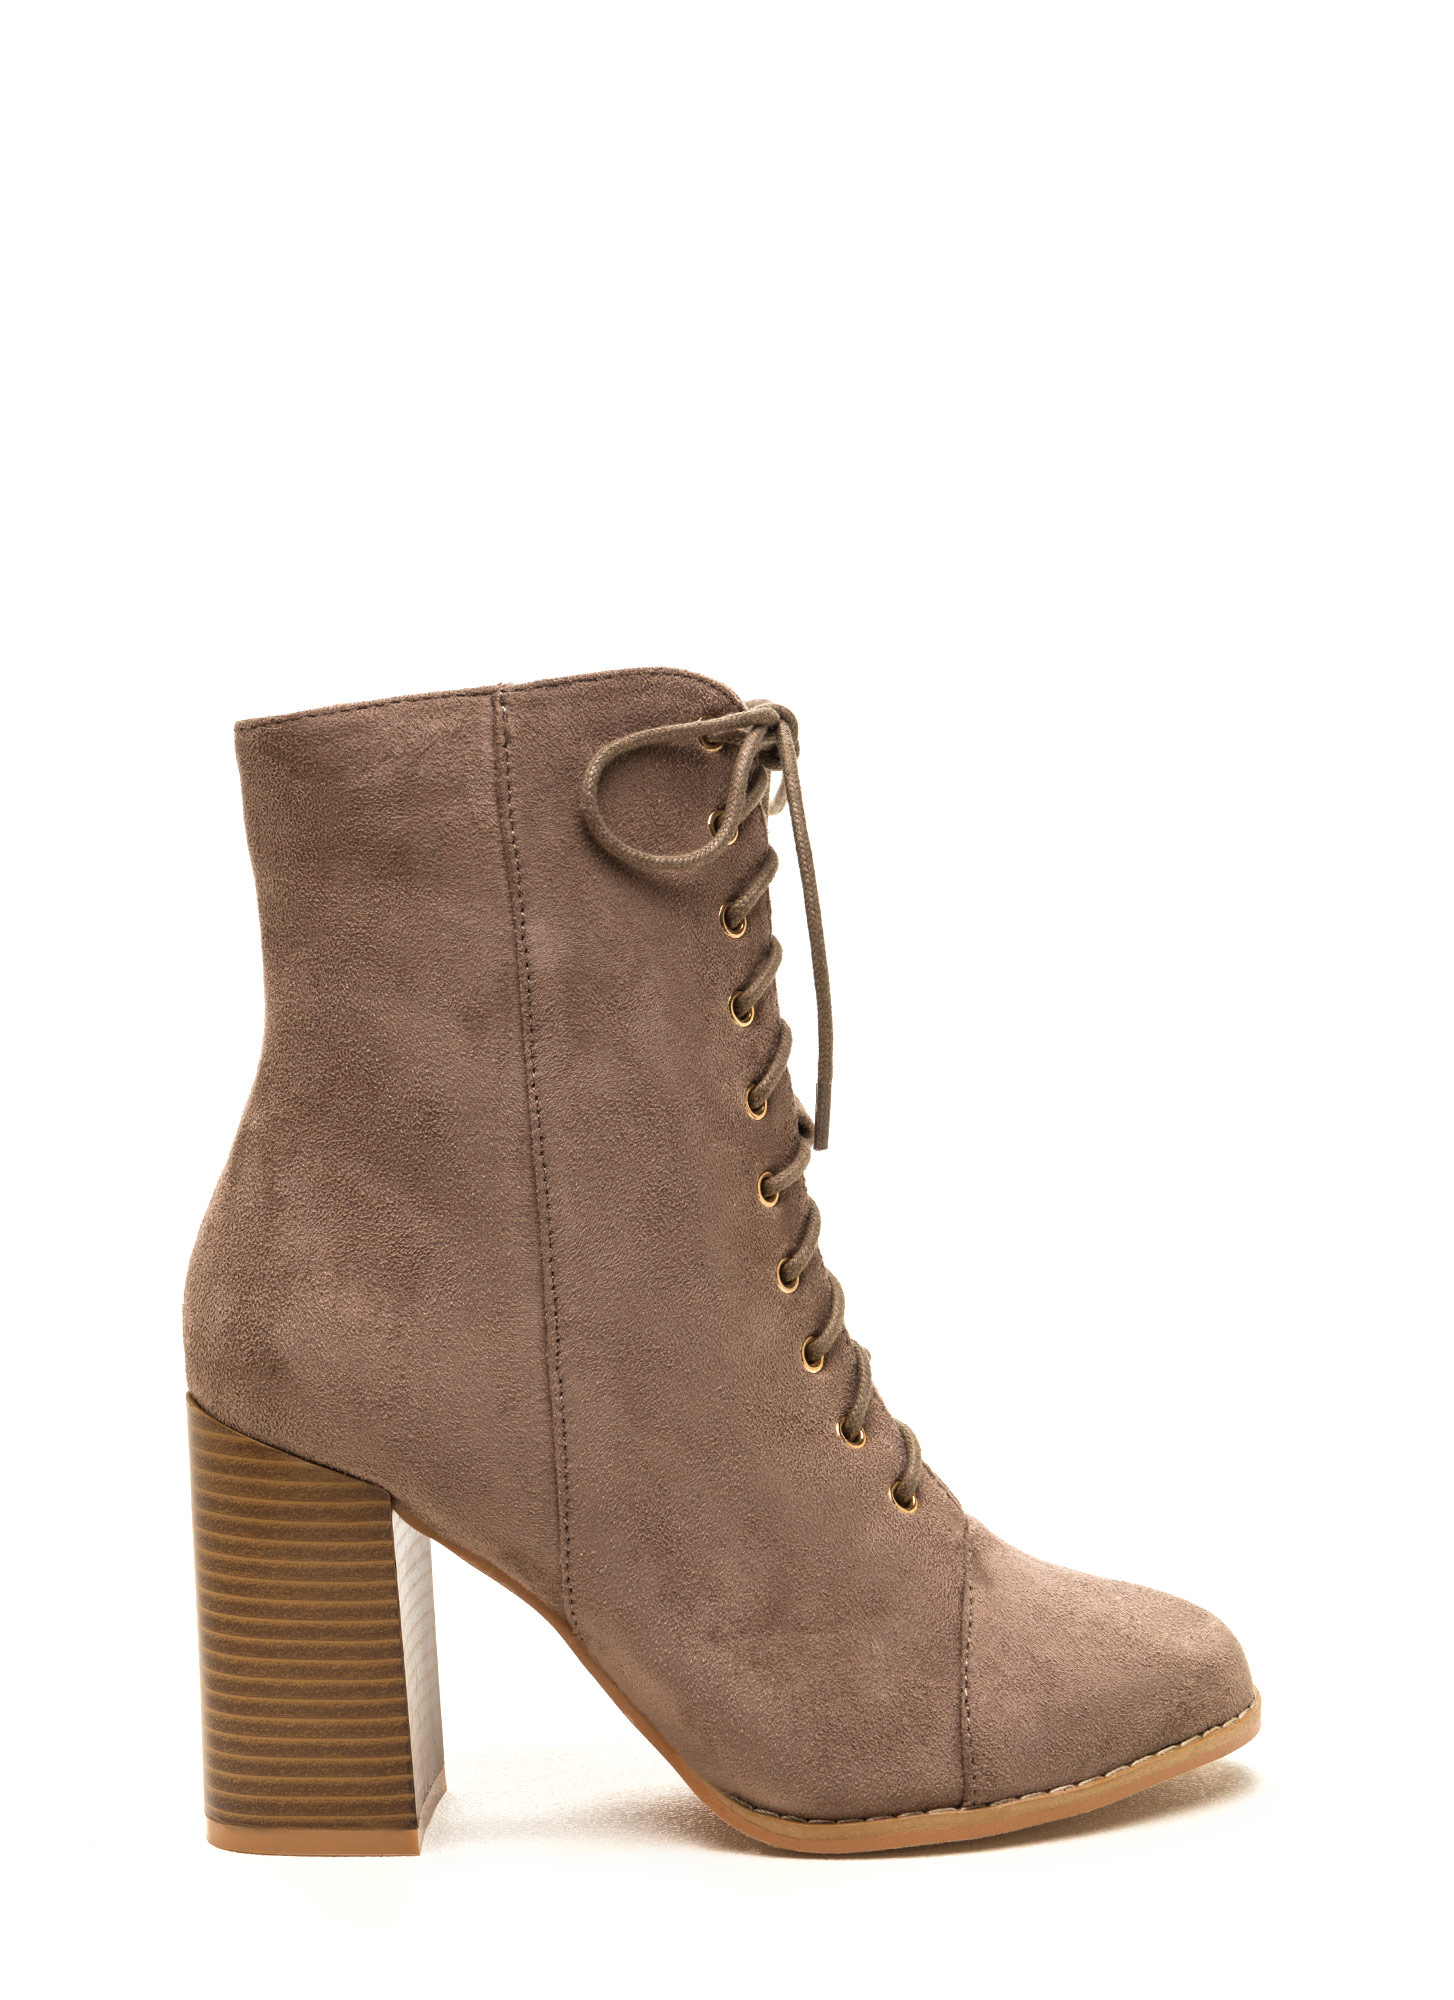 Bring It On Chunky Lace-Up Booties TAUPE